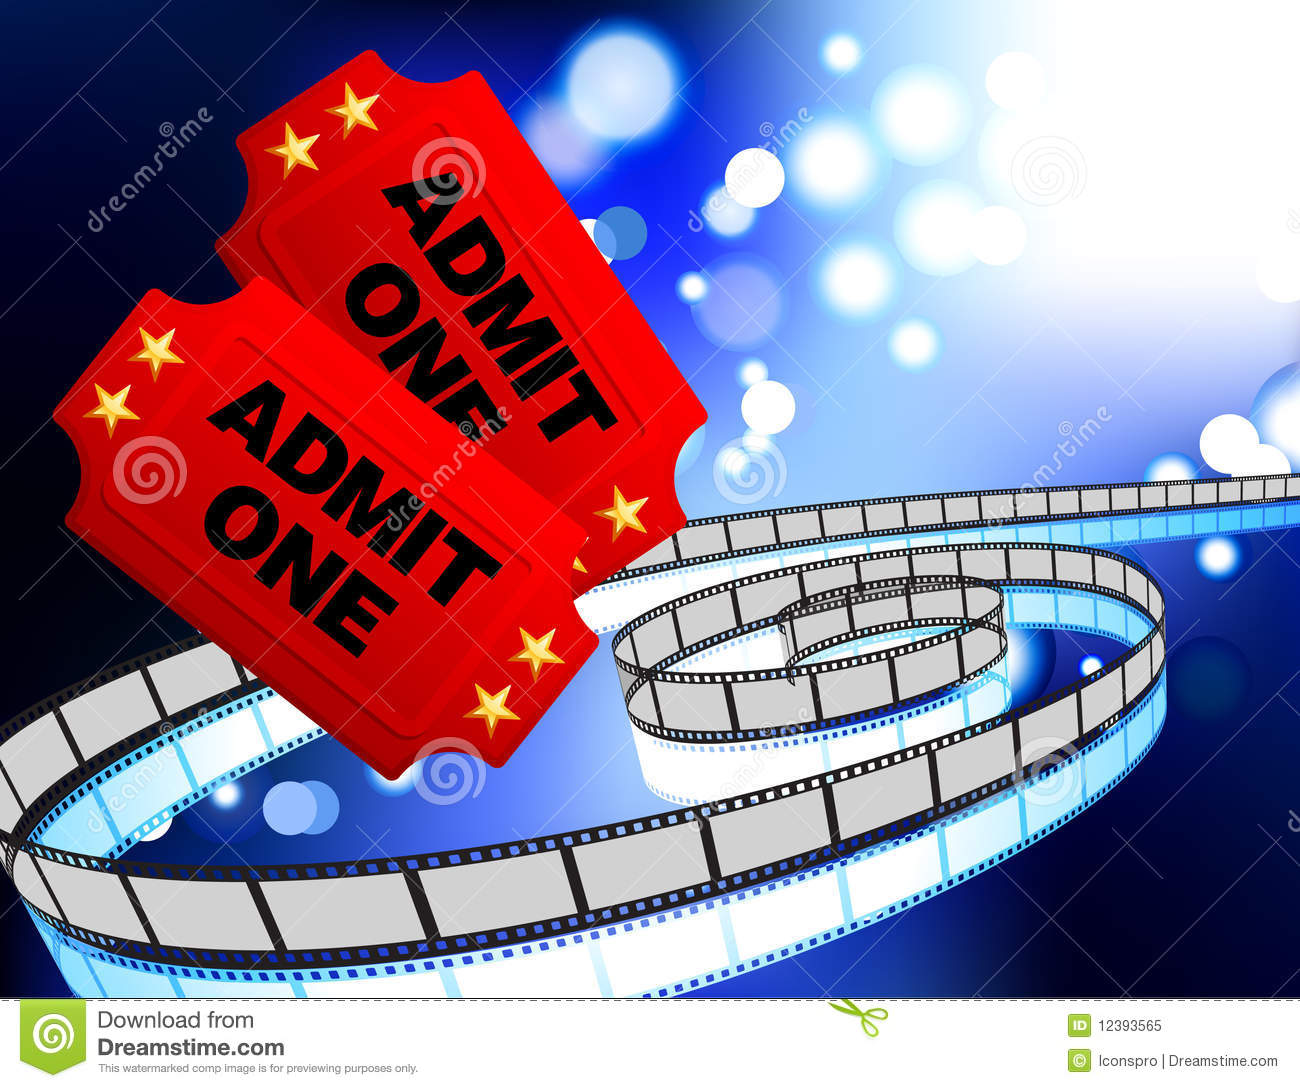 Movie Tickets With Film Reel Internet Background Royalty ...